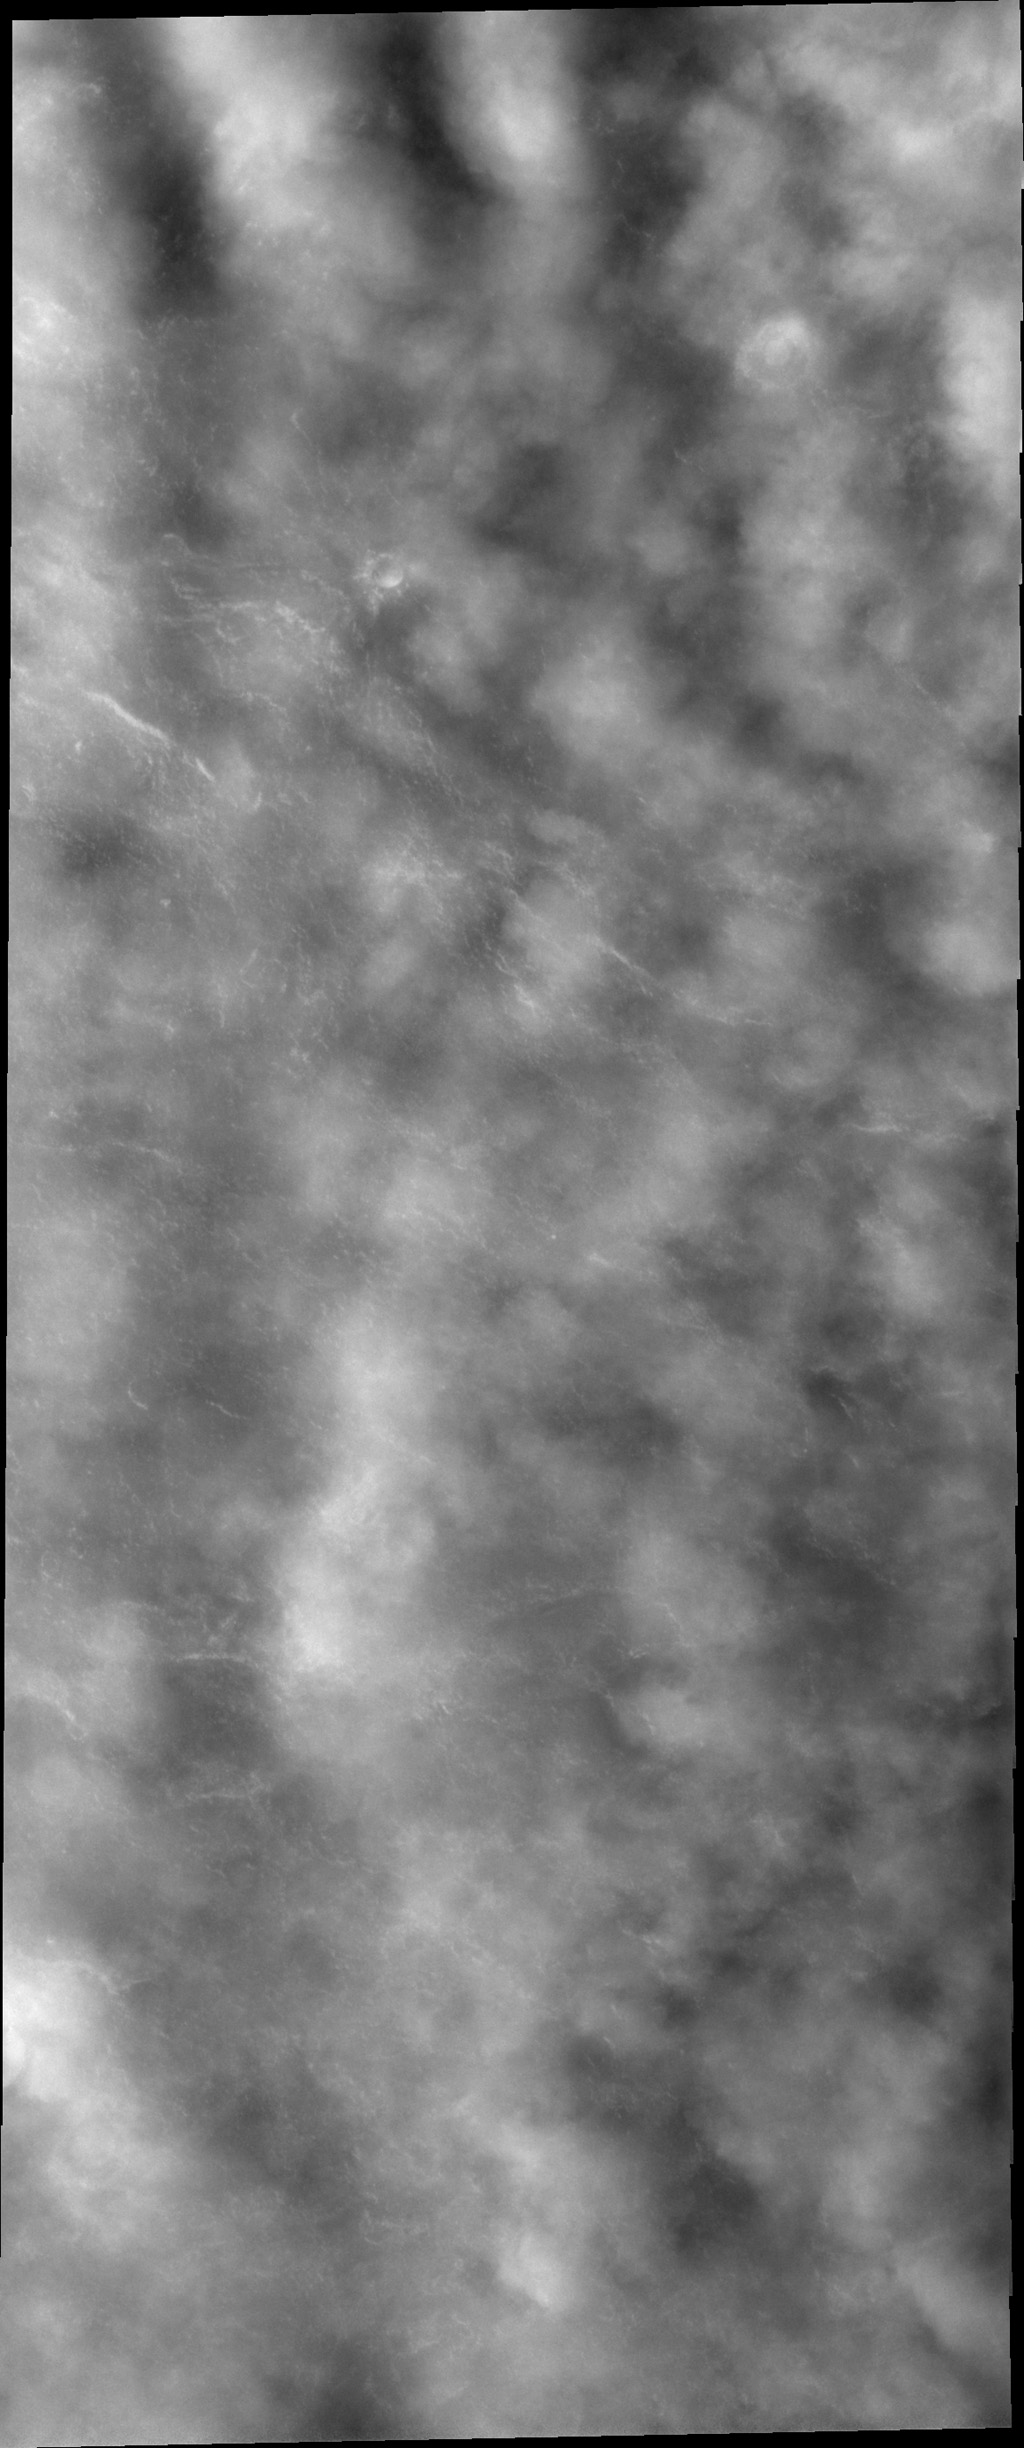 With the changing of seasons comes changes in weather. This image from NASA's 2001 Mars Odyssey spacecraft shows clouds in the north polar region. The surface is just barely visible in part of the image.